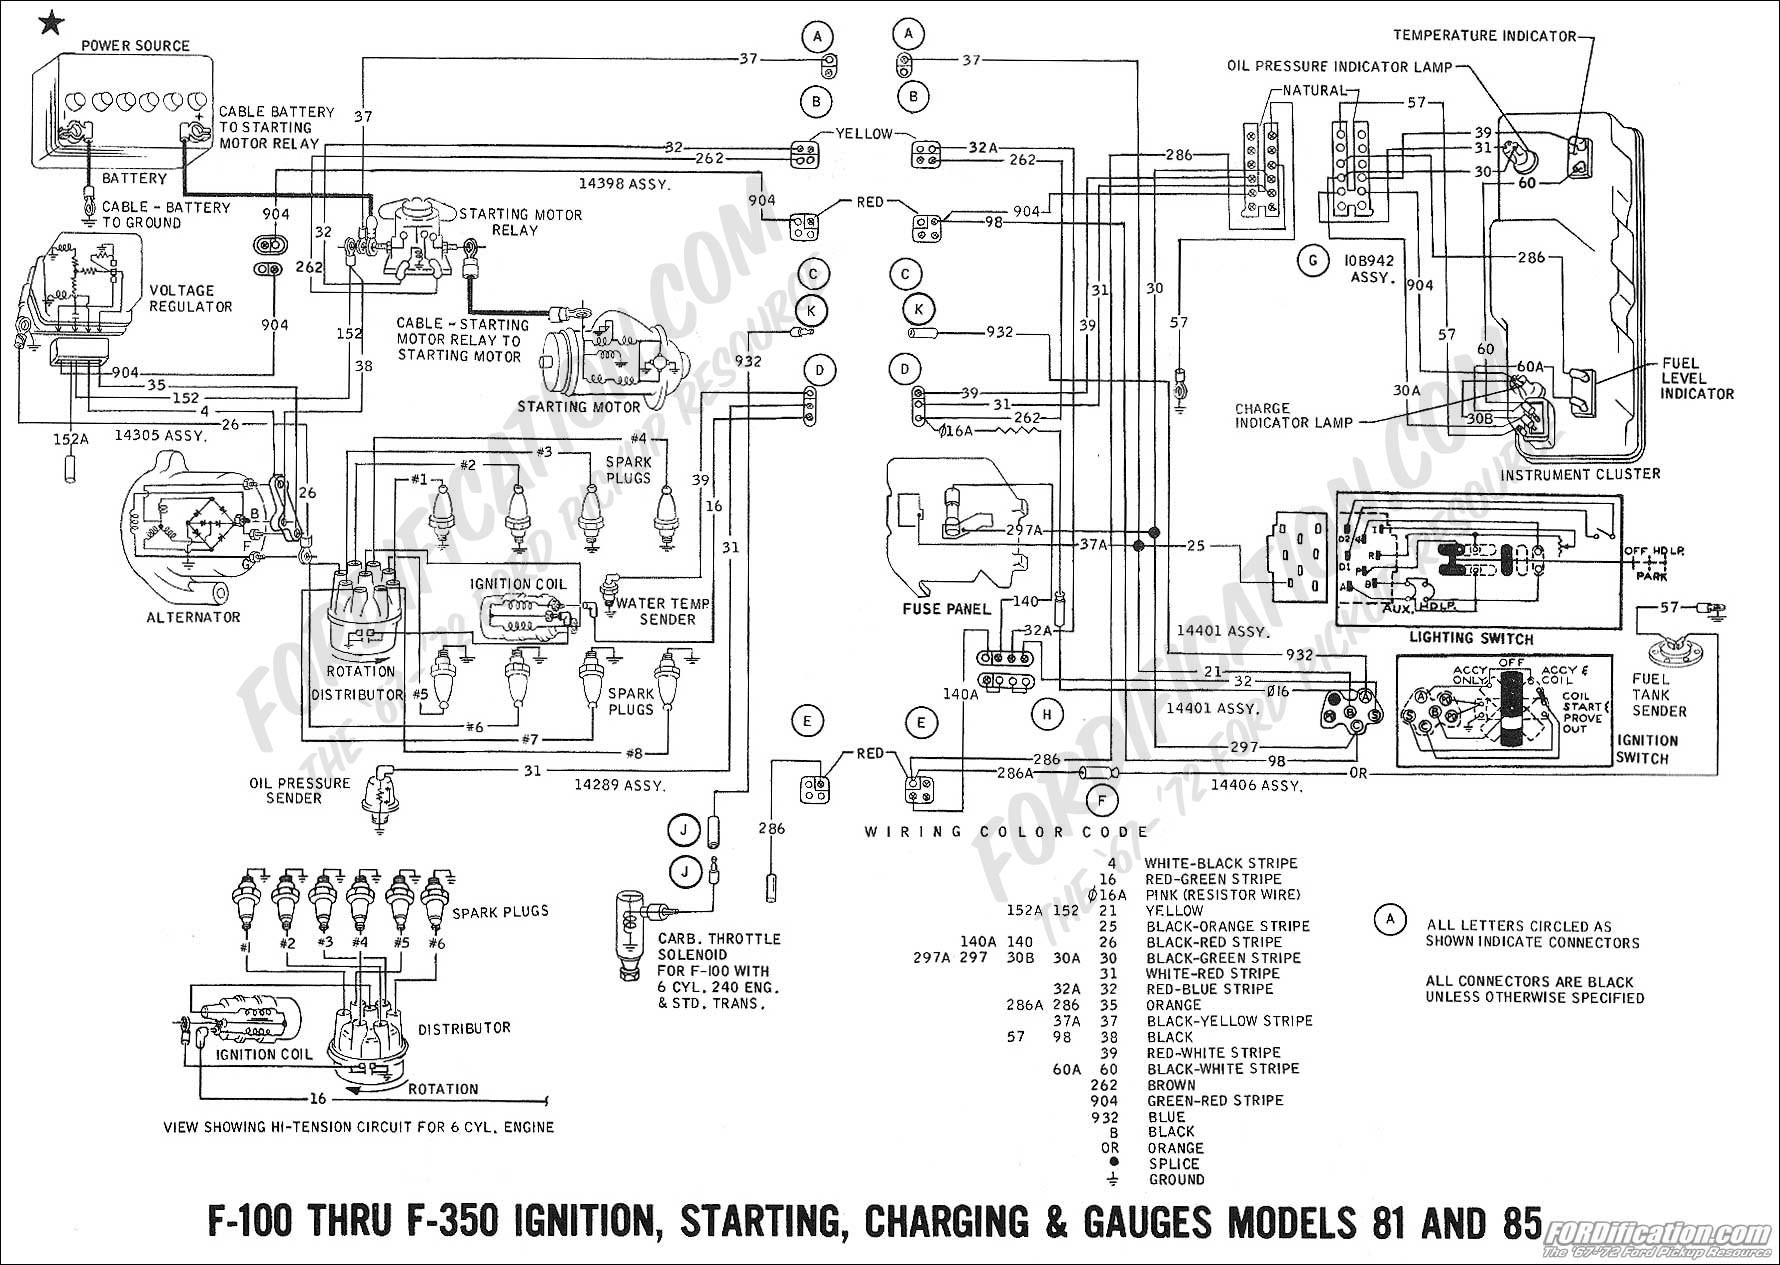 1978 ford engine diagram wiring library 1948 ford truck wiring harness 1978 ford truck wiring harness #13